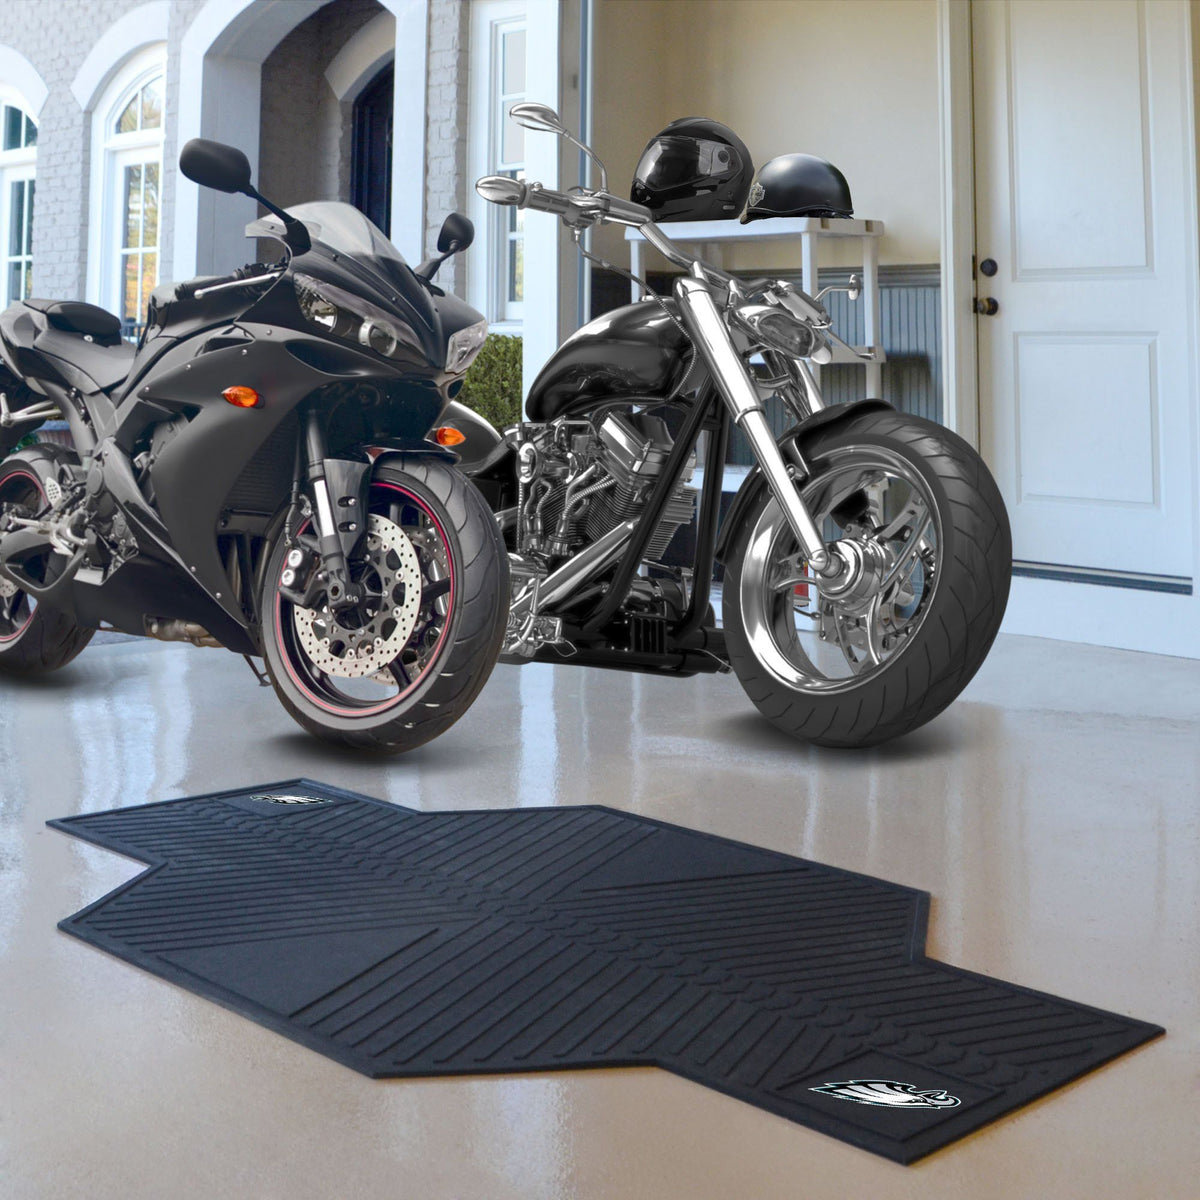 "NFL - Motorcycle Mat, 82.5"" x 42"" NFL Mats, Motorcycle Accessory, Motorcycle Mat, NFL, Auto Fan Mats Philadelphia Eagles"